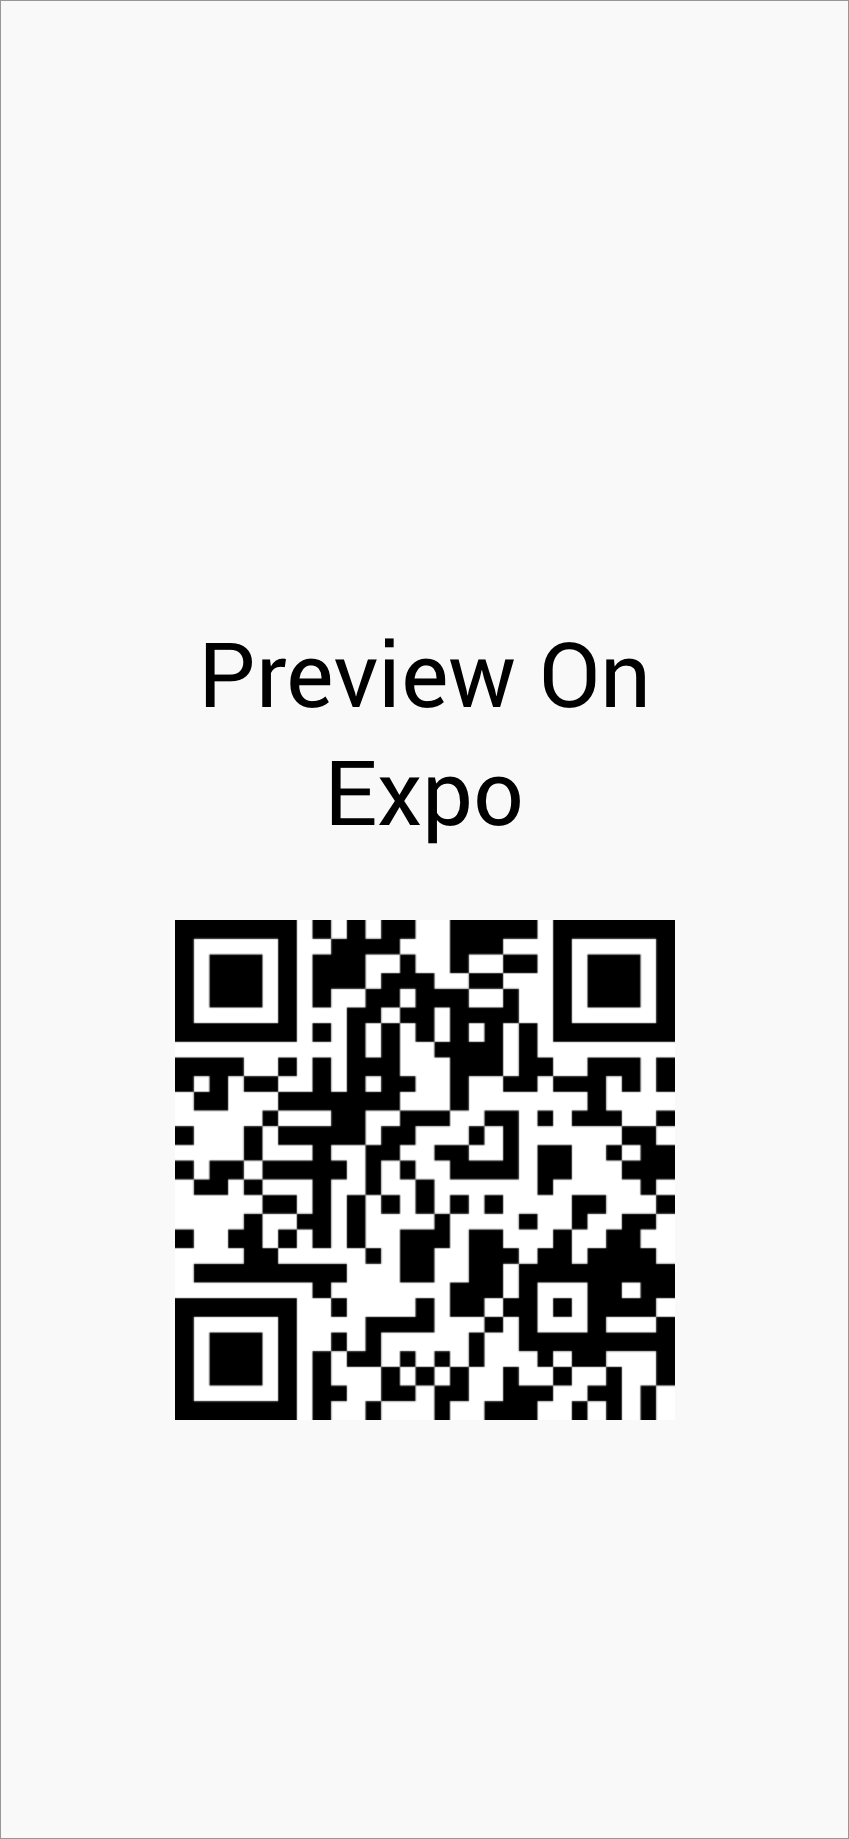 Scan To Open In Expo